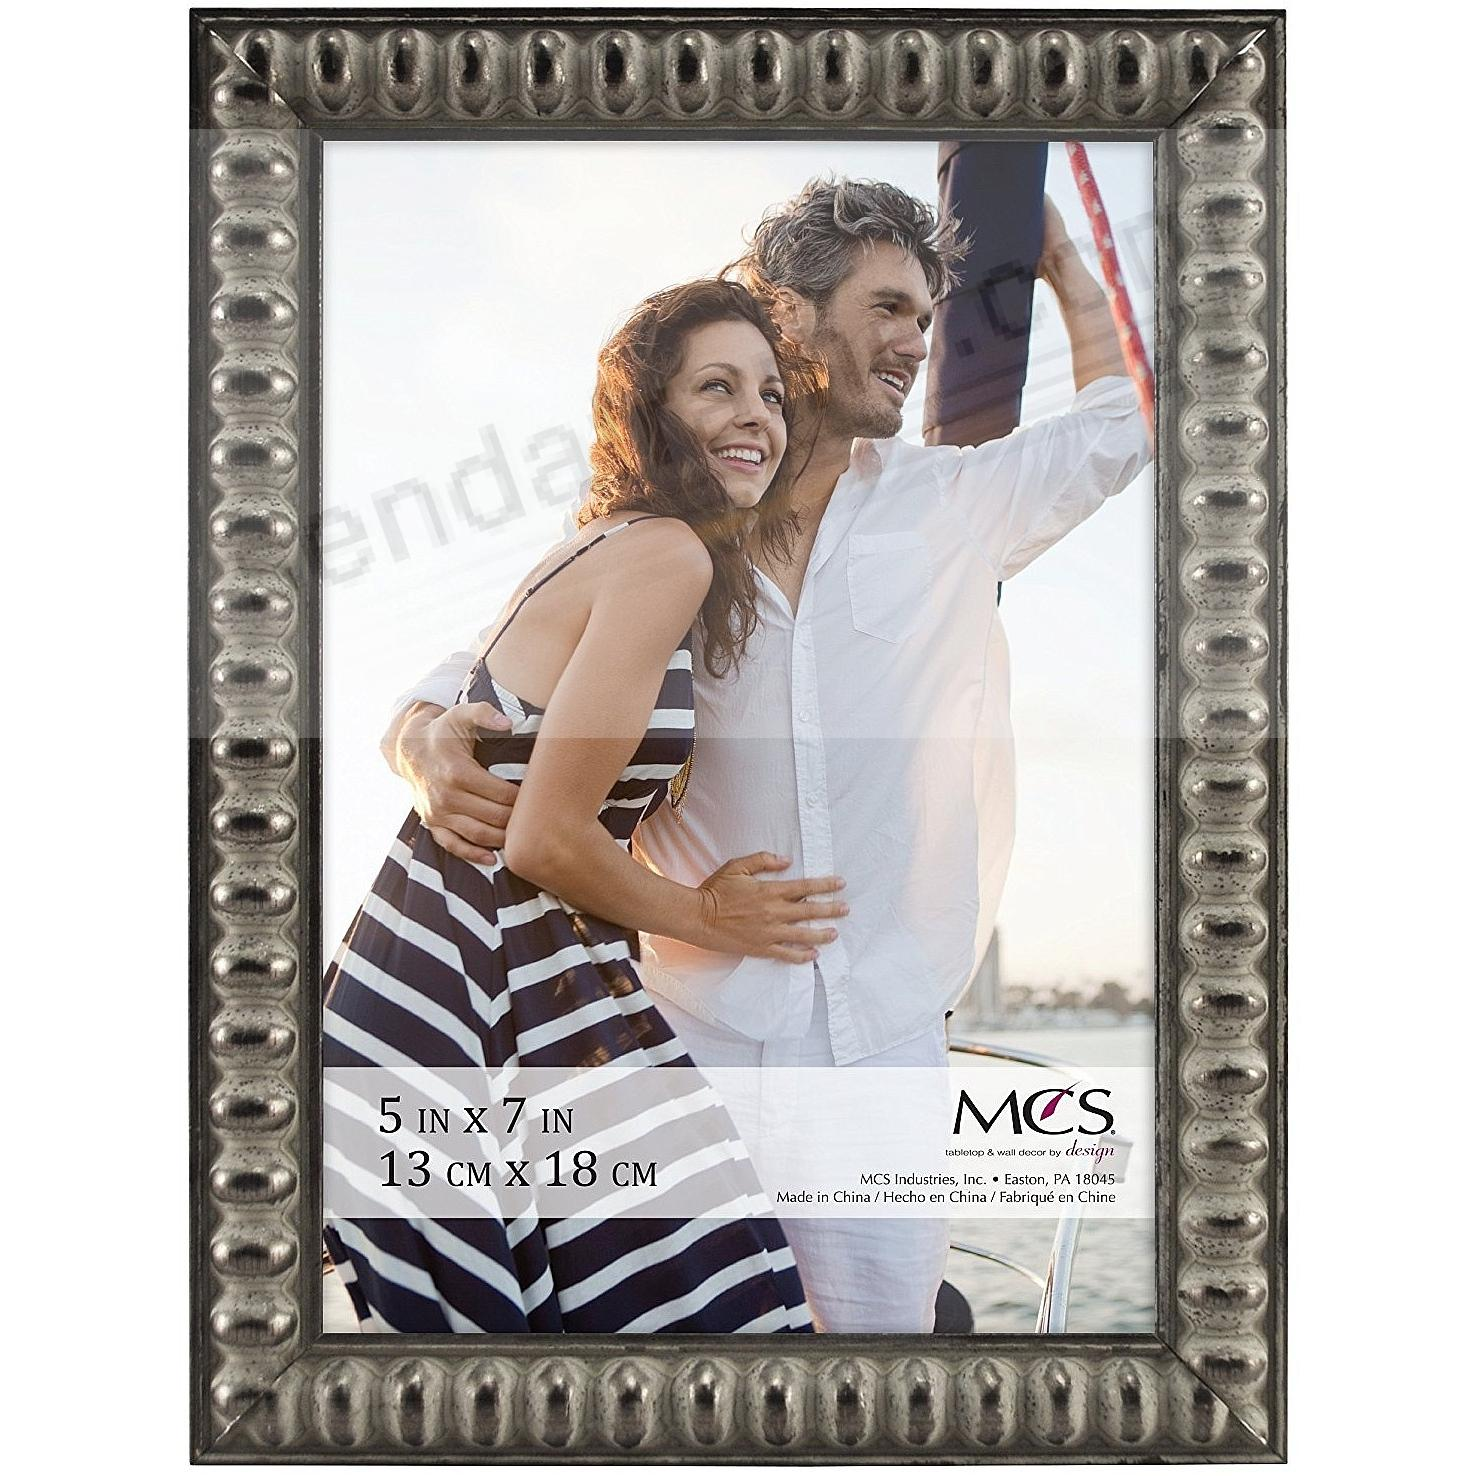 THIN BEAD Wood Pewter frame 5x7 by MCS®